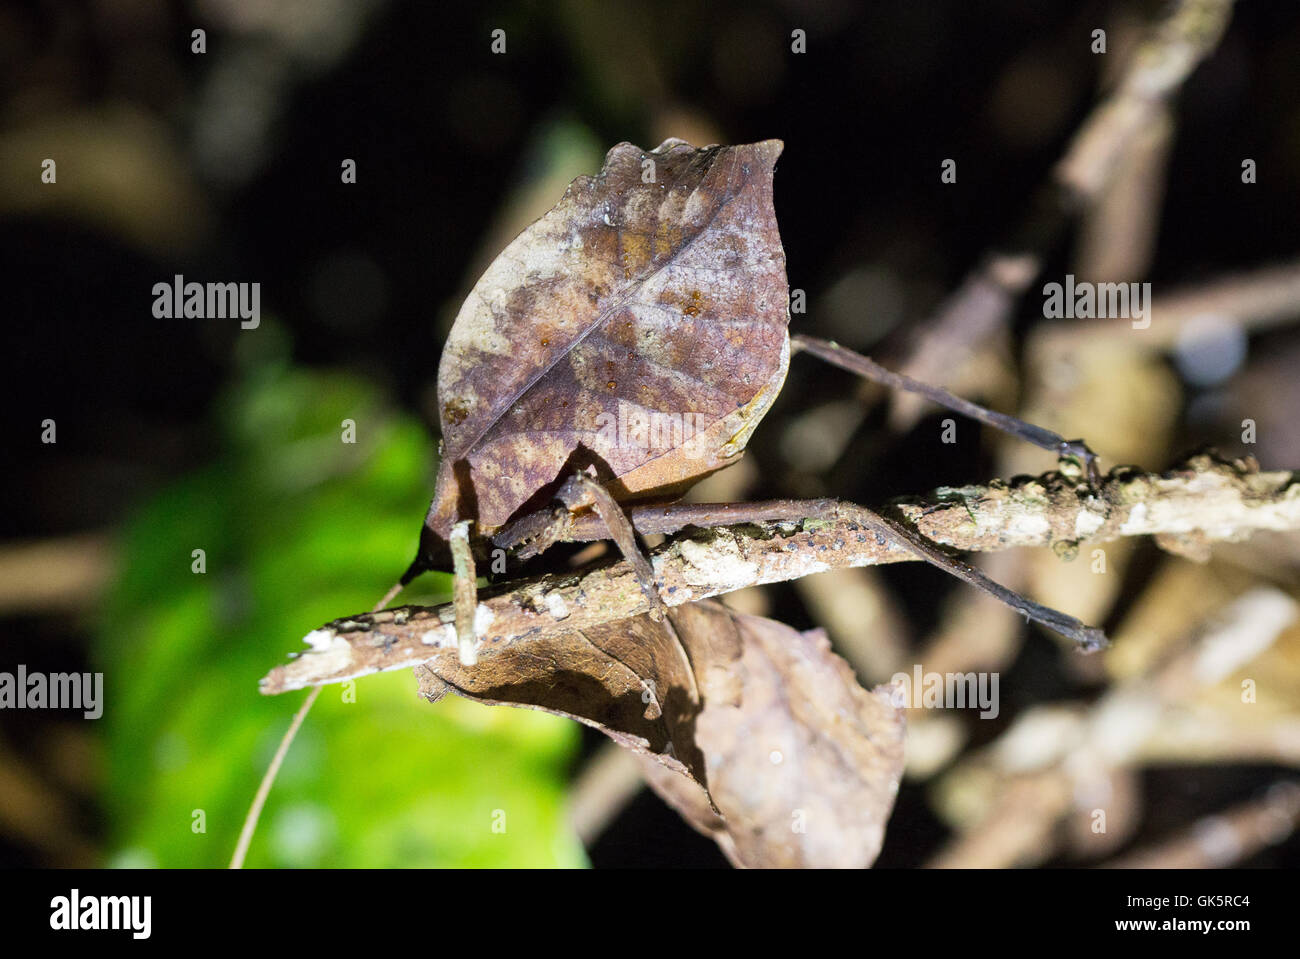 A leaf mimic insect, or leaf mimic katydid, Costa Rica, Central America - Stock Image